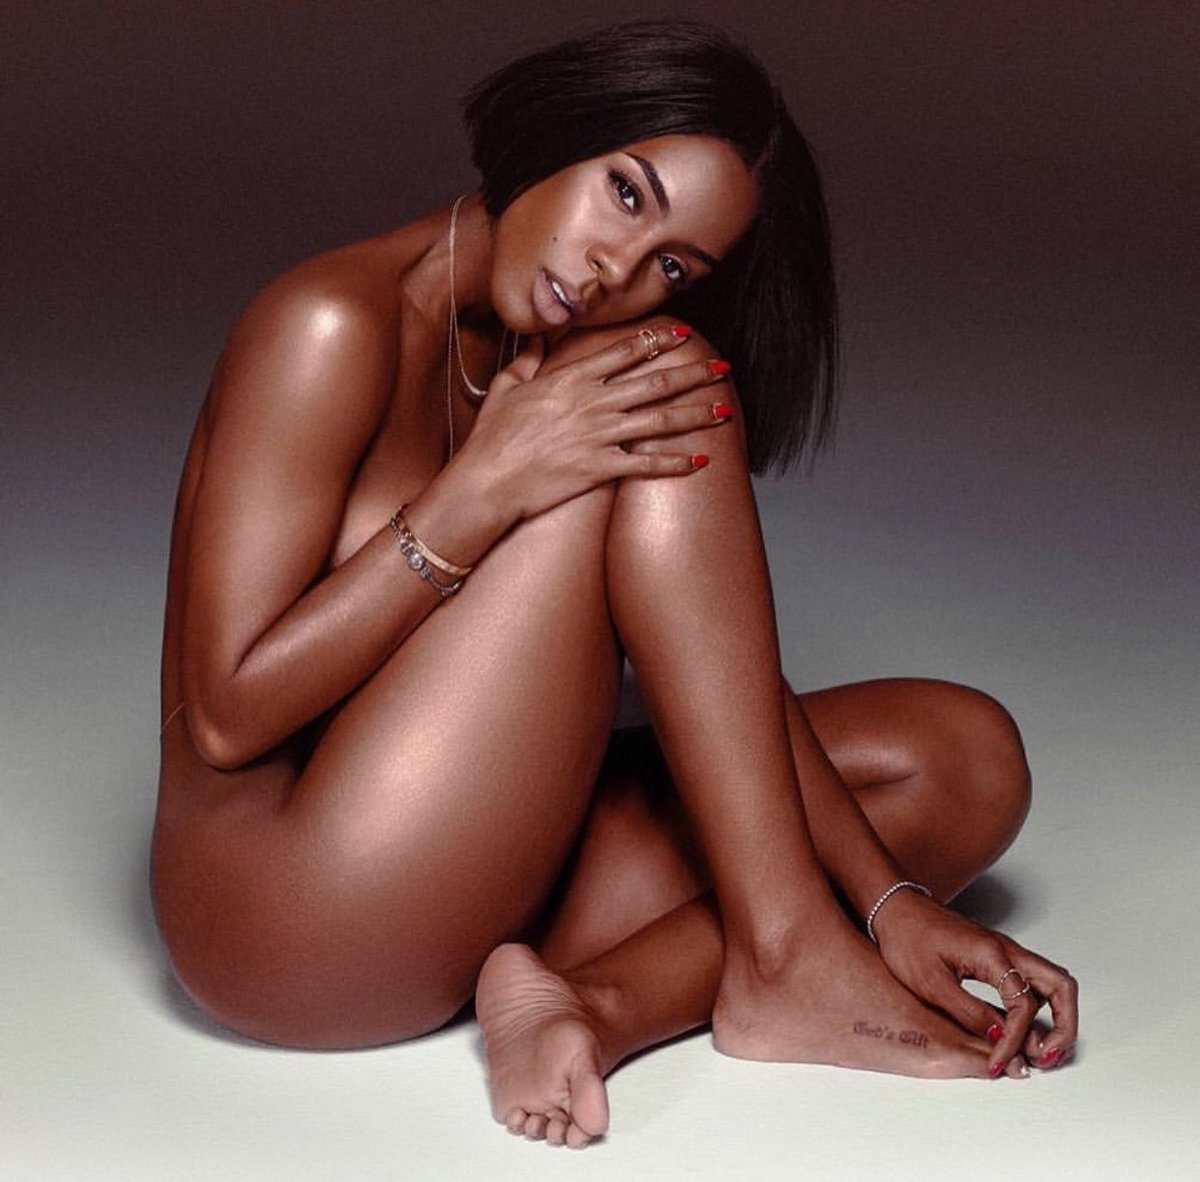 Kelly rowland naked pictures